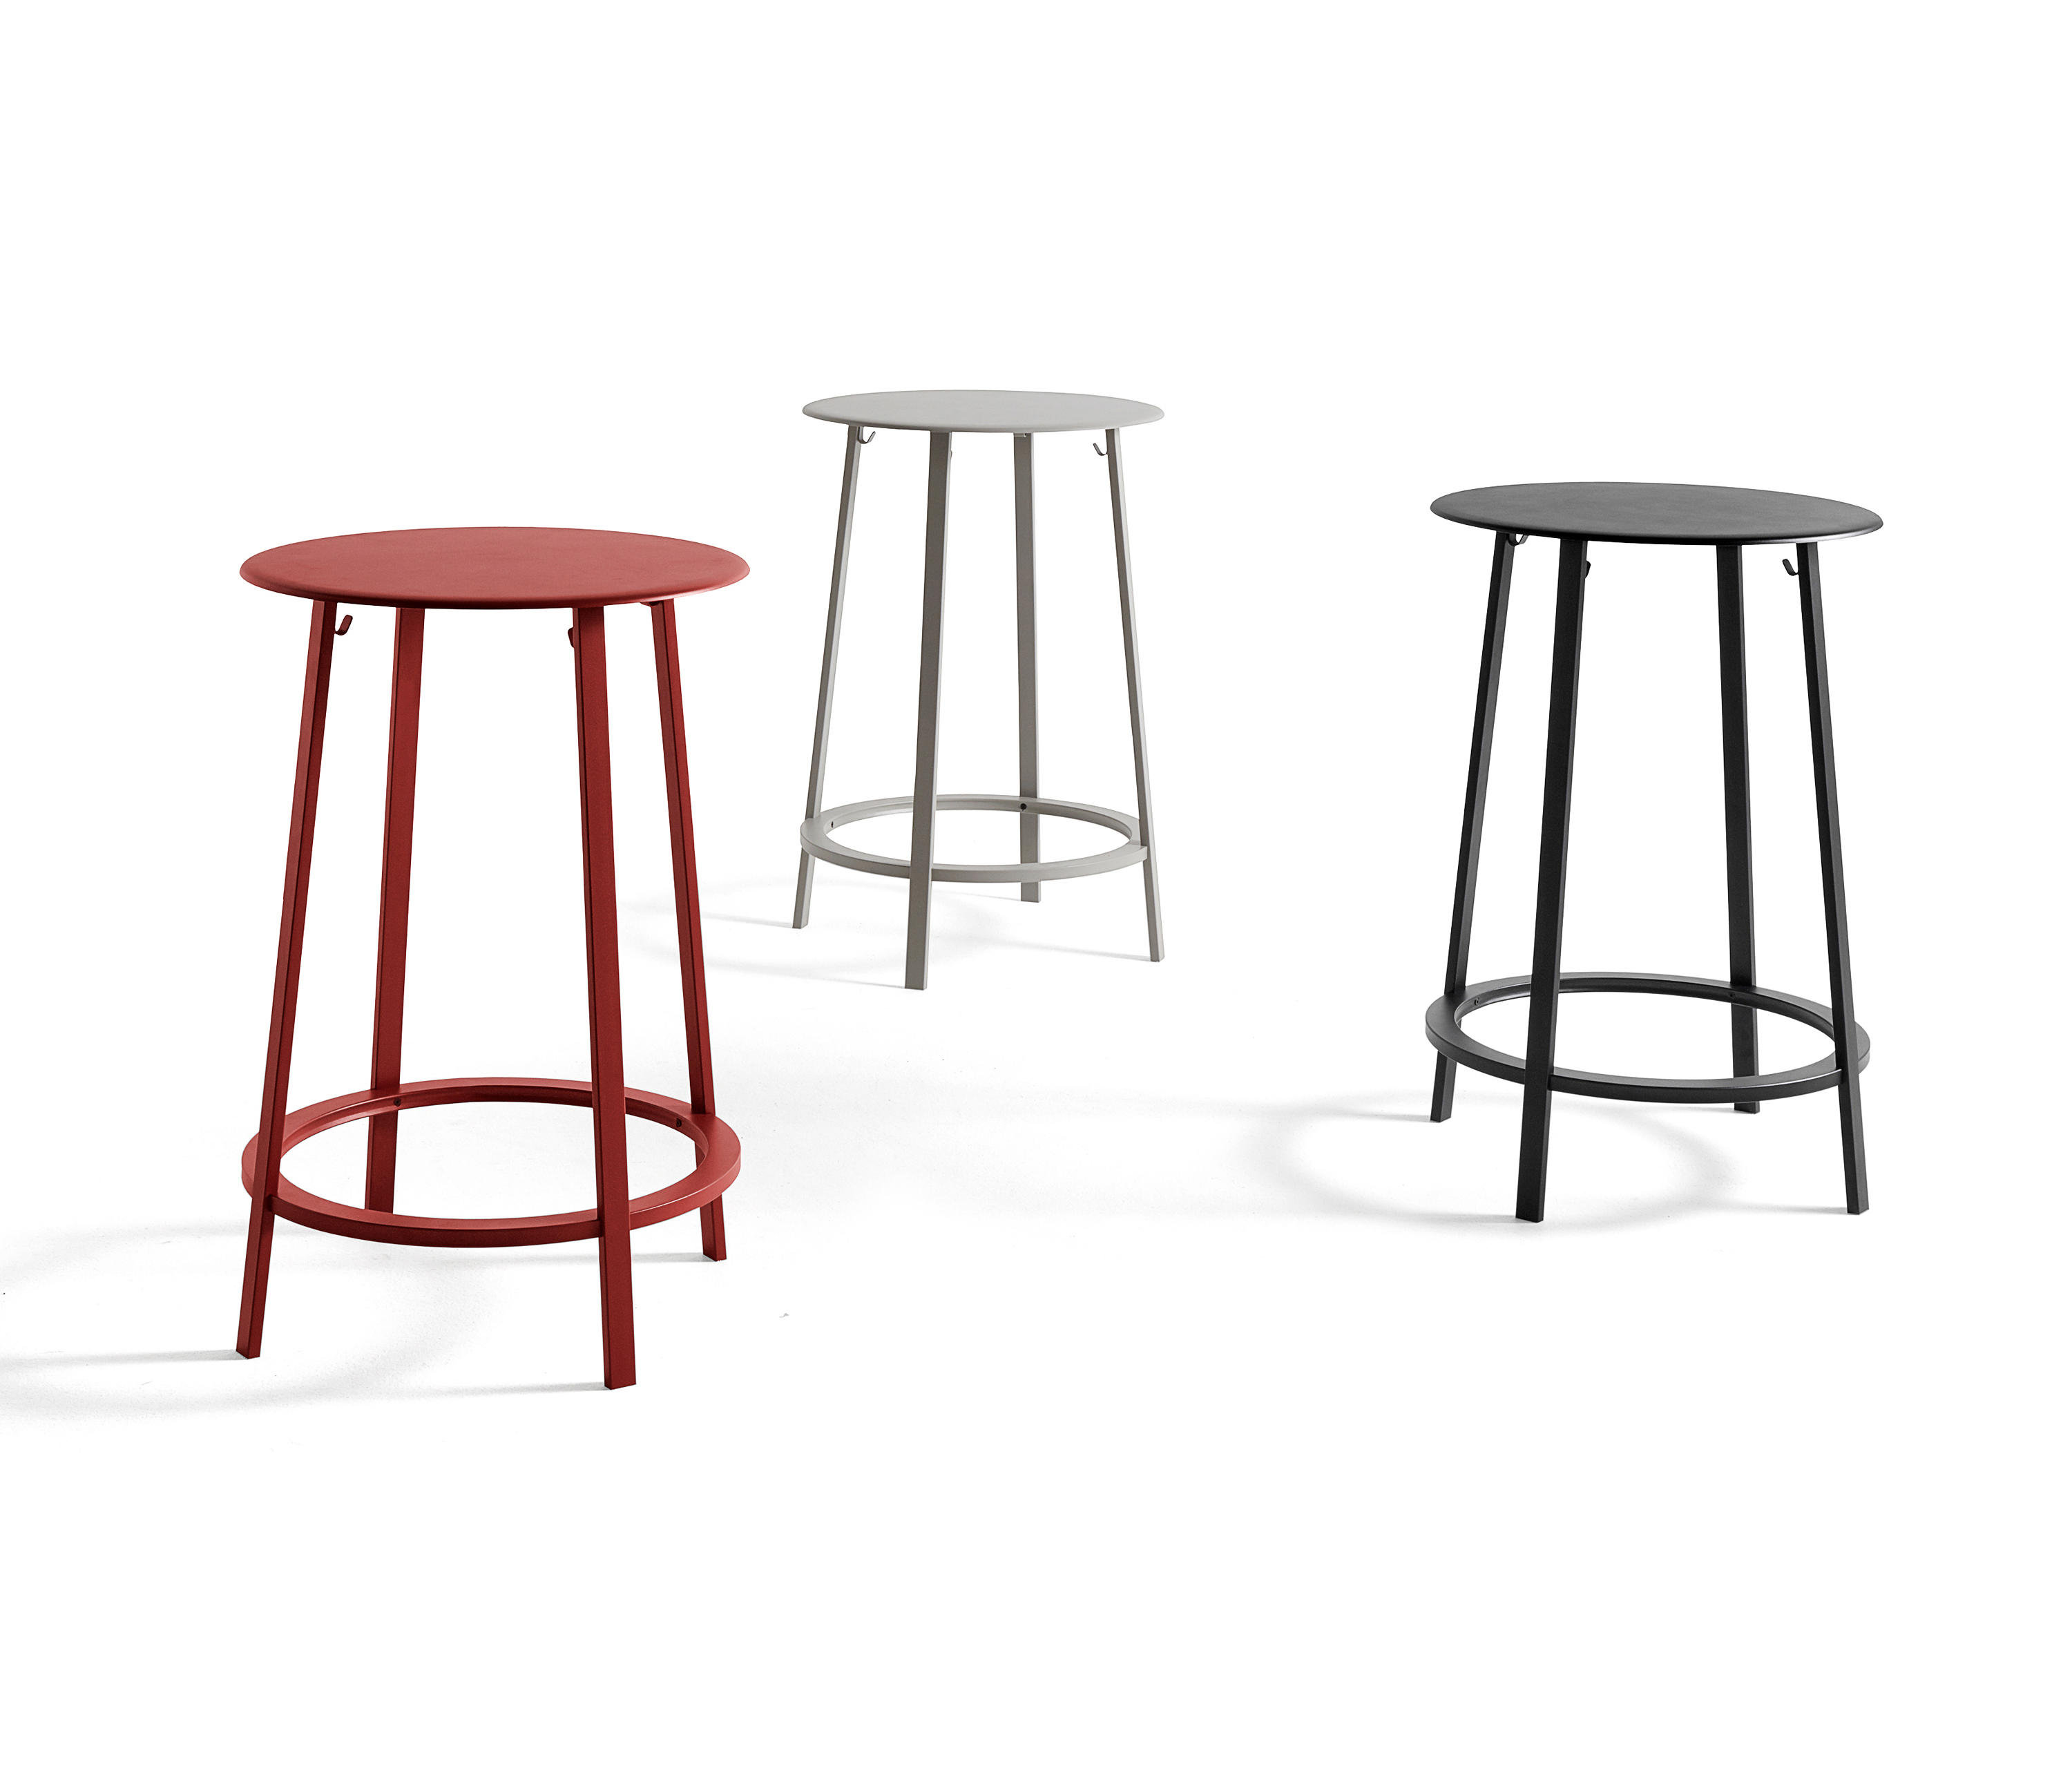 Revolver Table Standing Tables From Hay Architonic